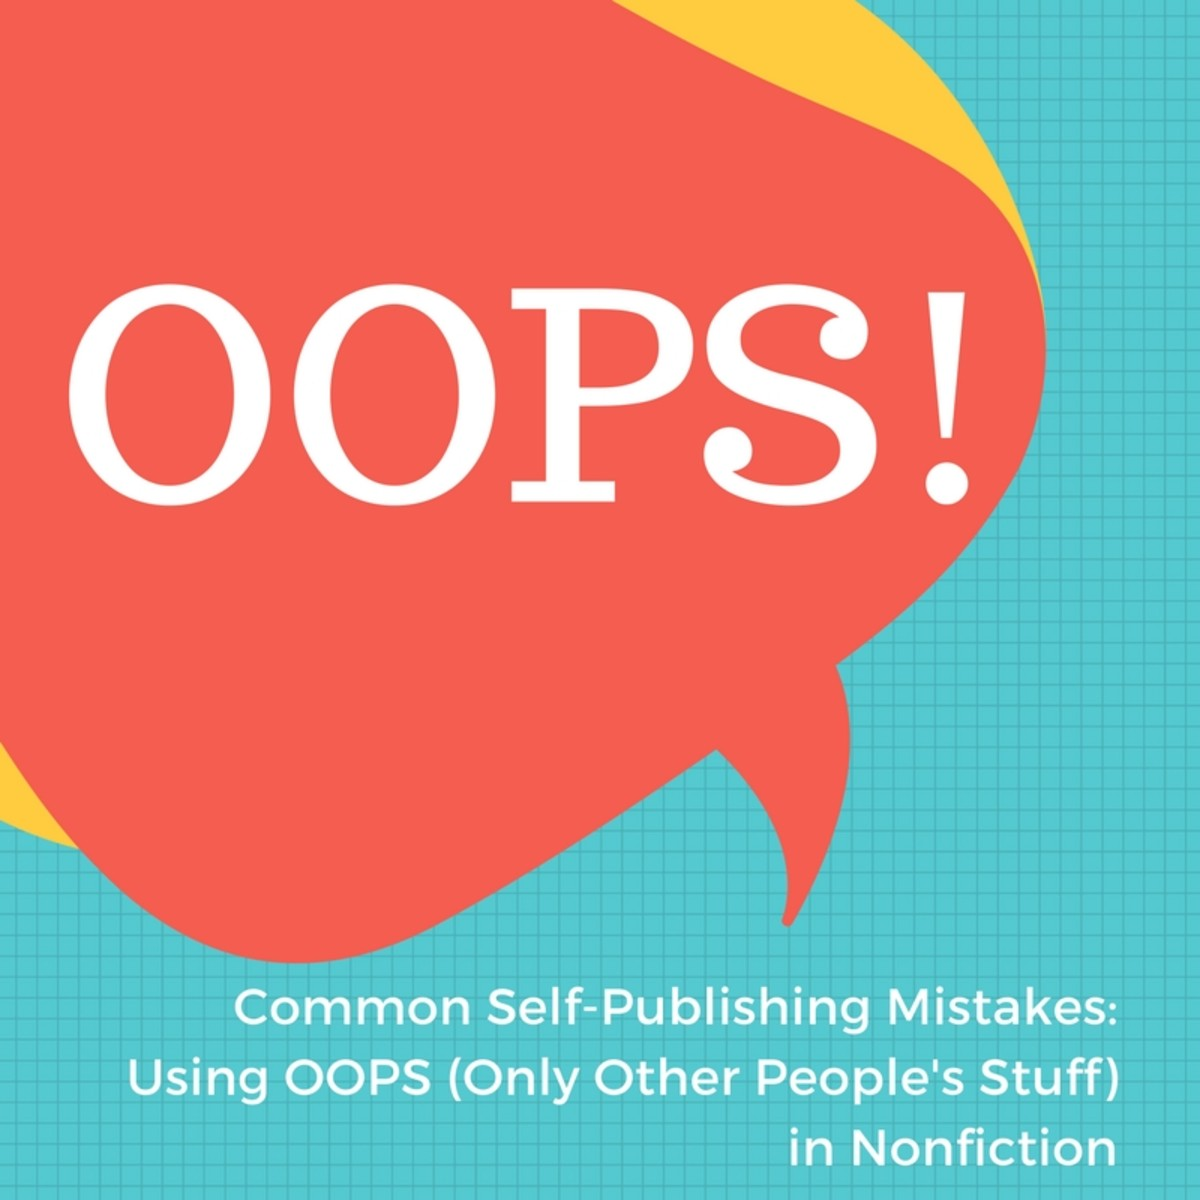 Common Self-Publishing Mistakes: Using OOPS (Only Other People's Stuff) in Nonfiction